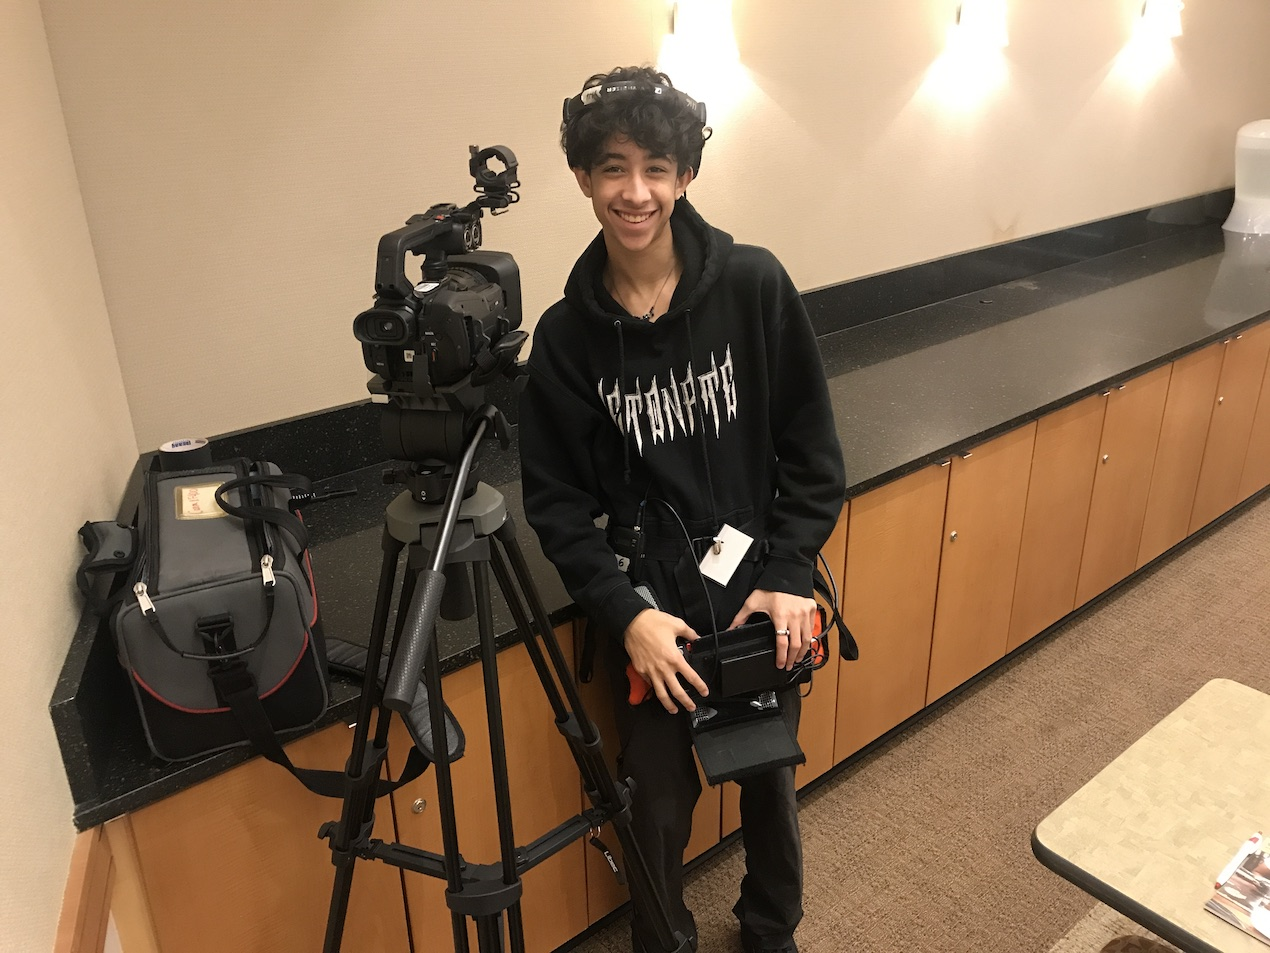 student prepares to film conference